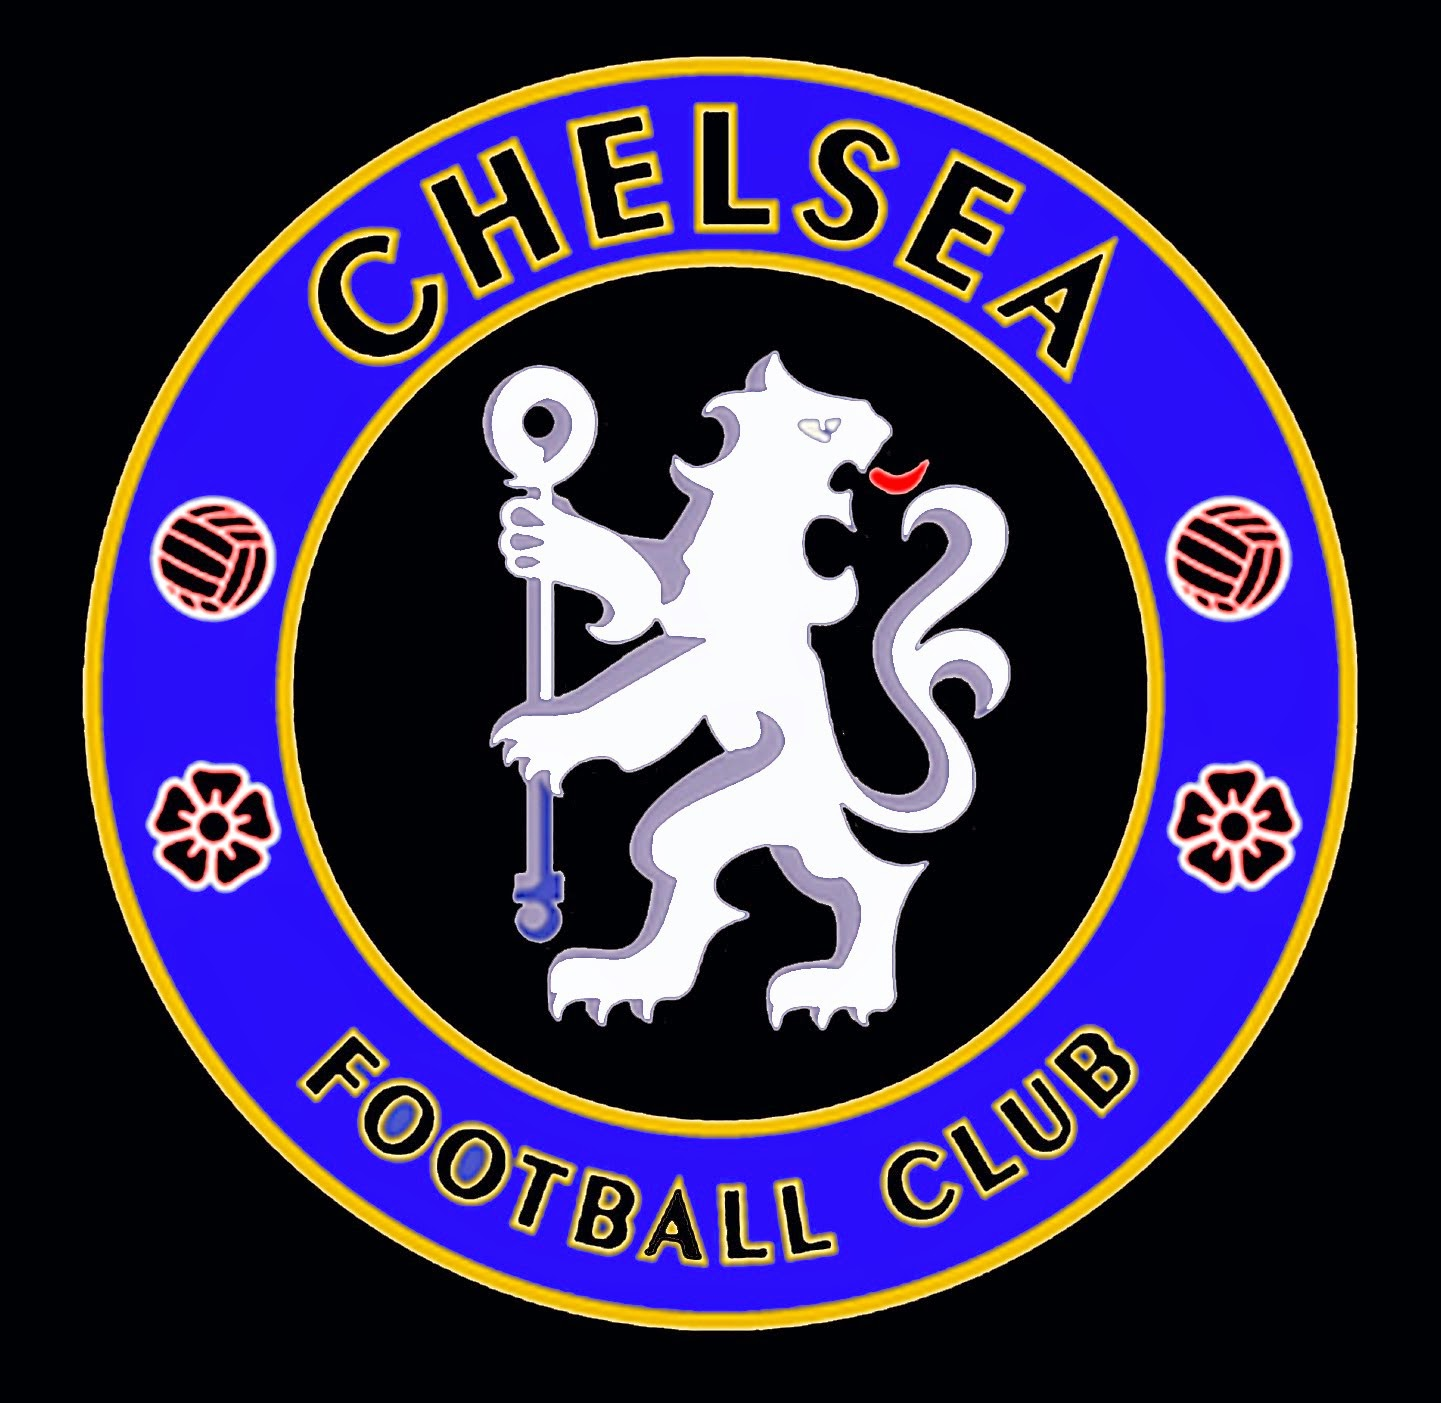 Chelsea Football Club Logo | All About Football Players